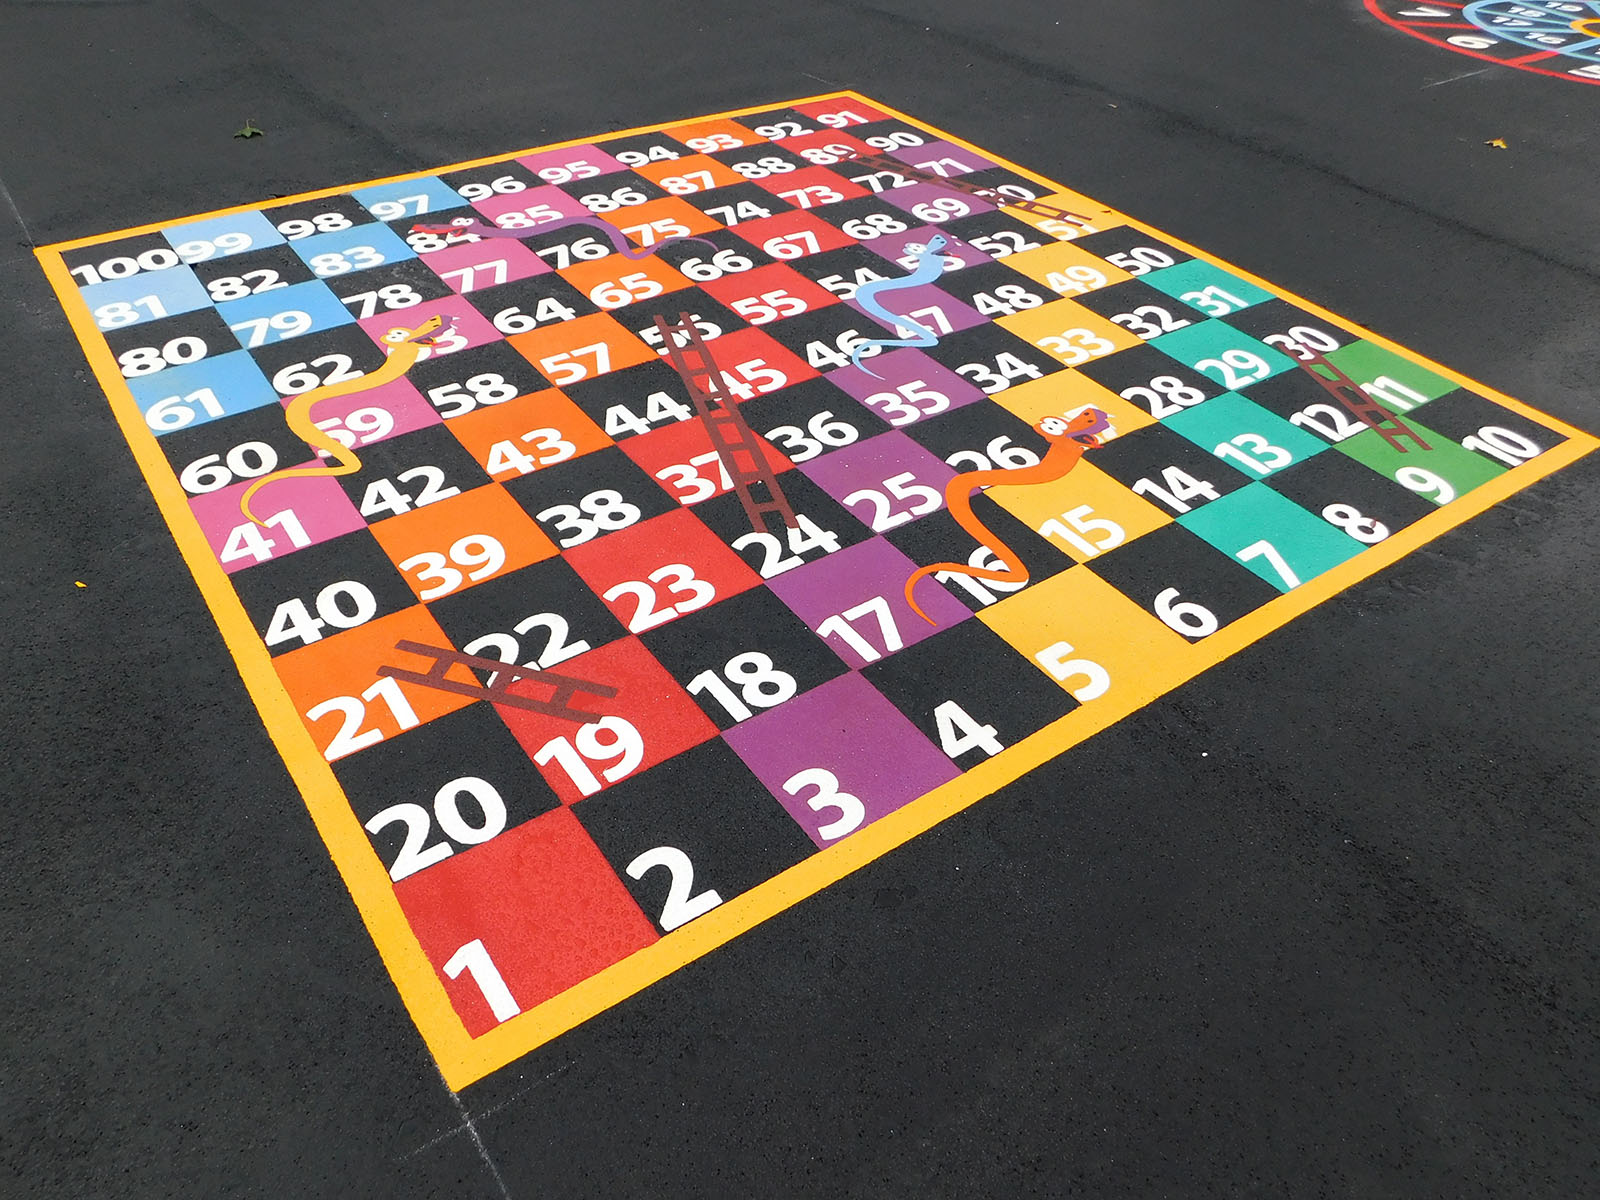 Board Game Playground Marking Gallery Images